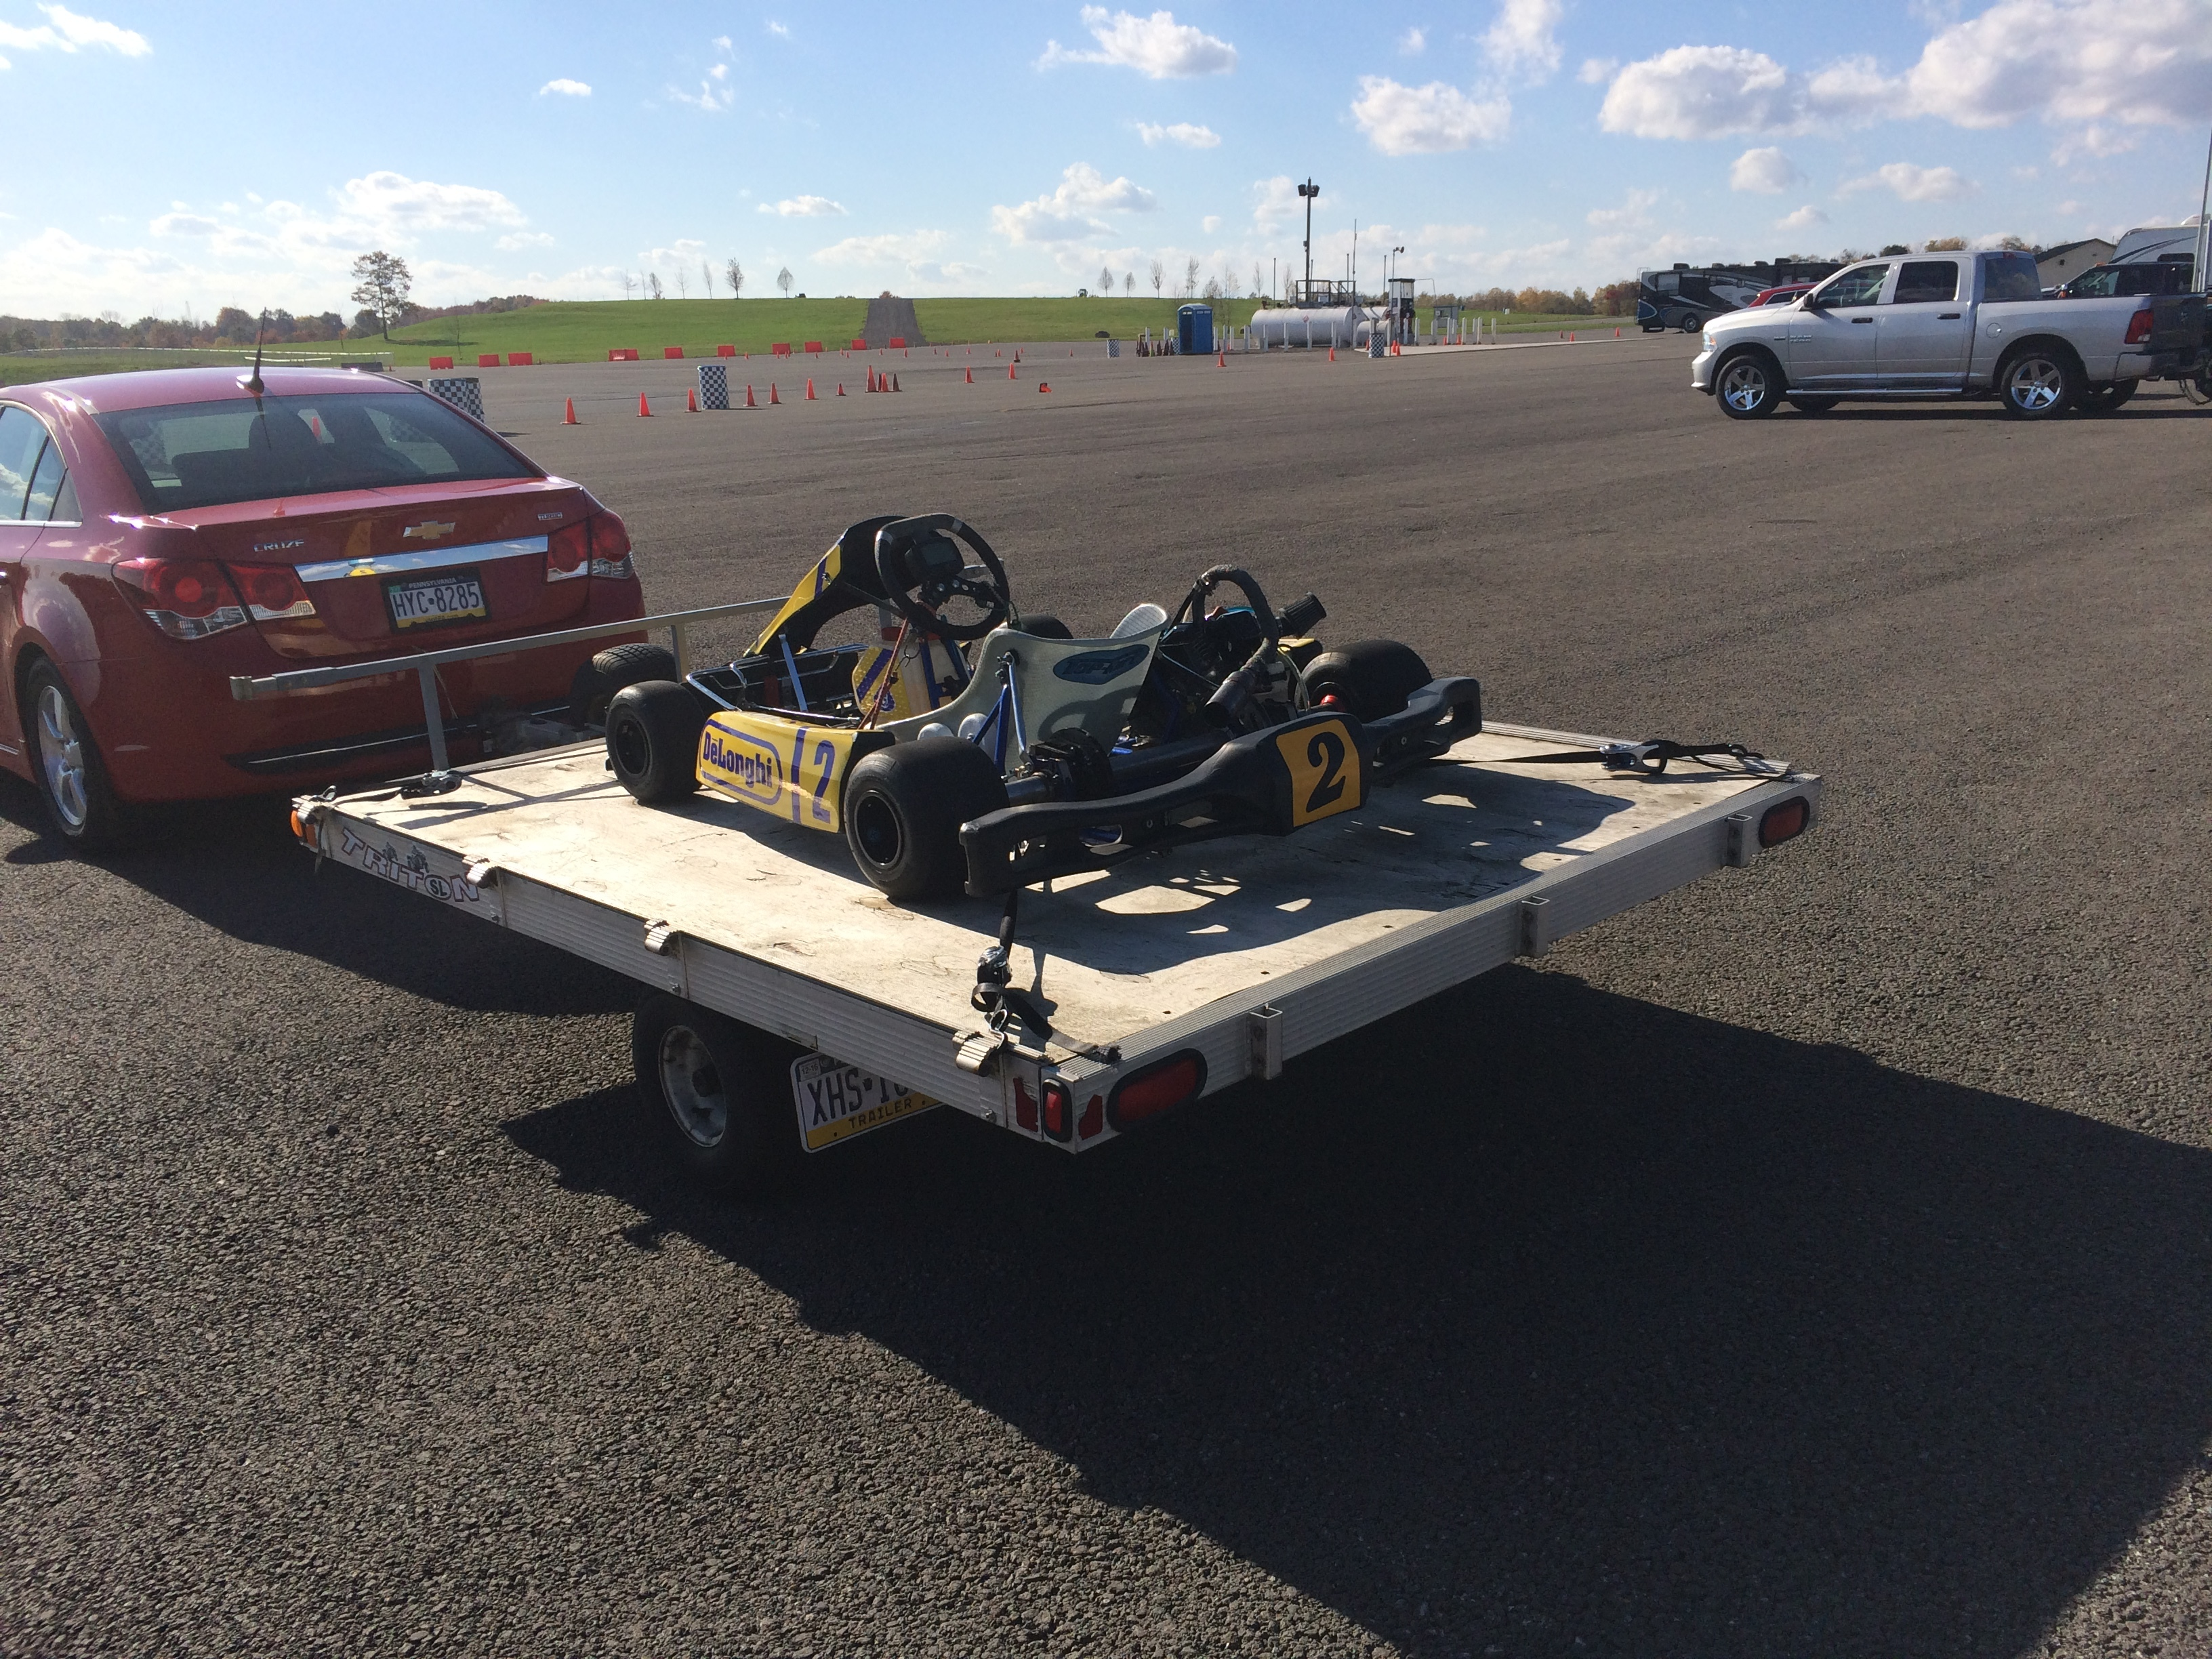 How do you Transport Your Kart? [Pic Topic] - Getting